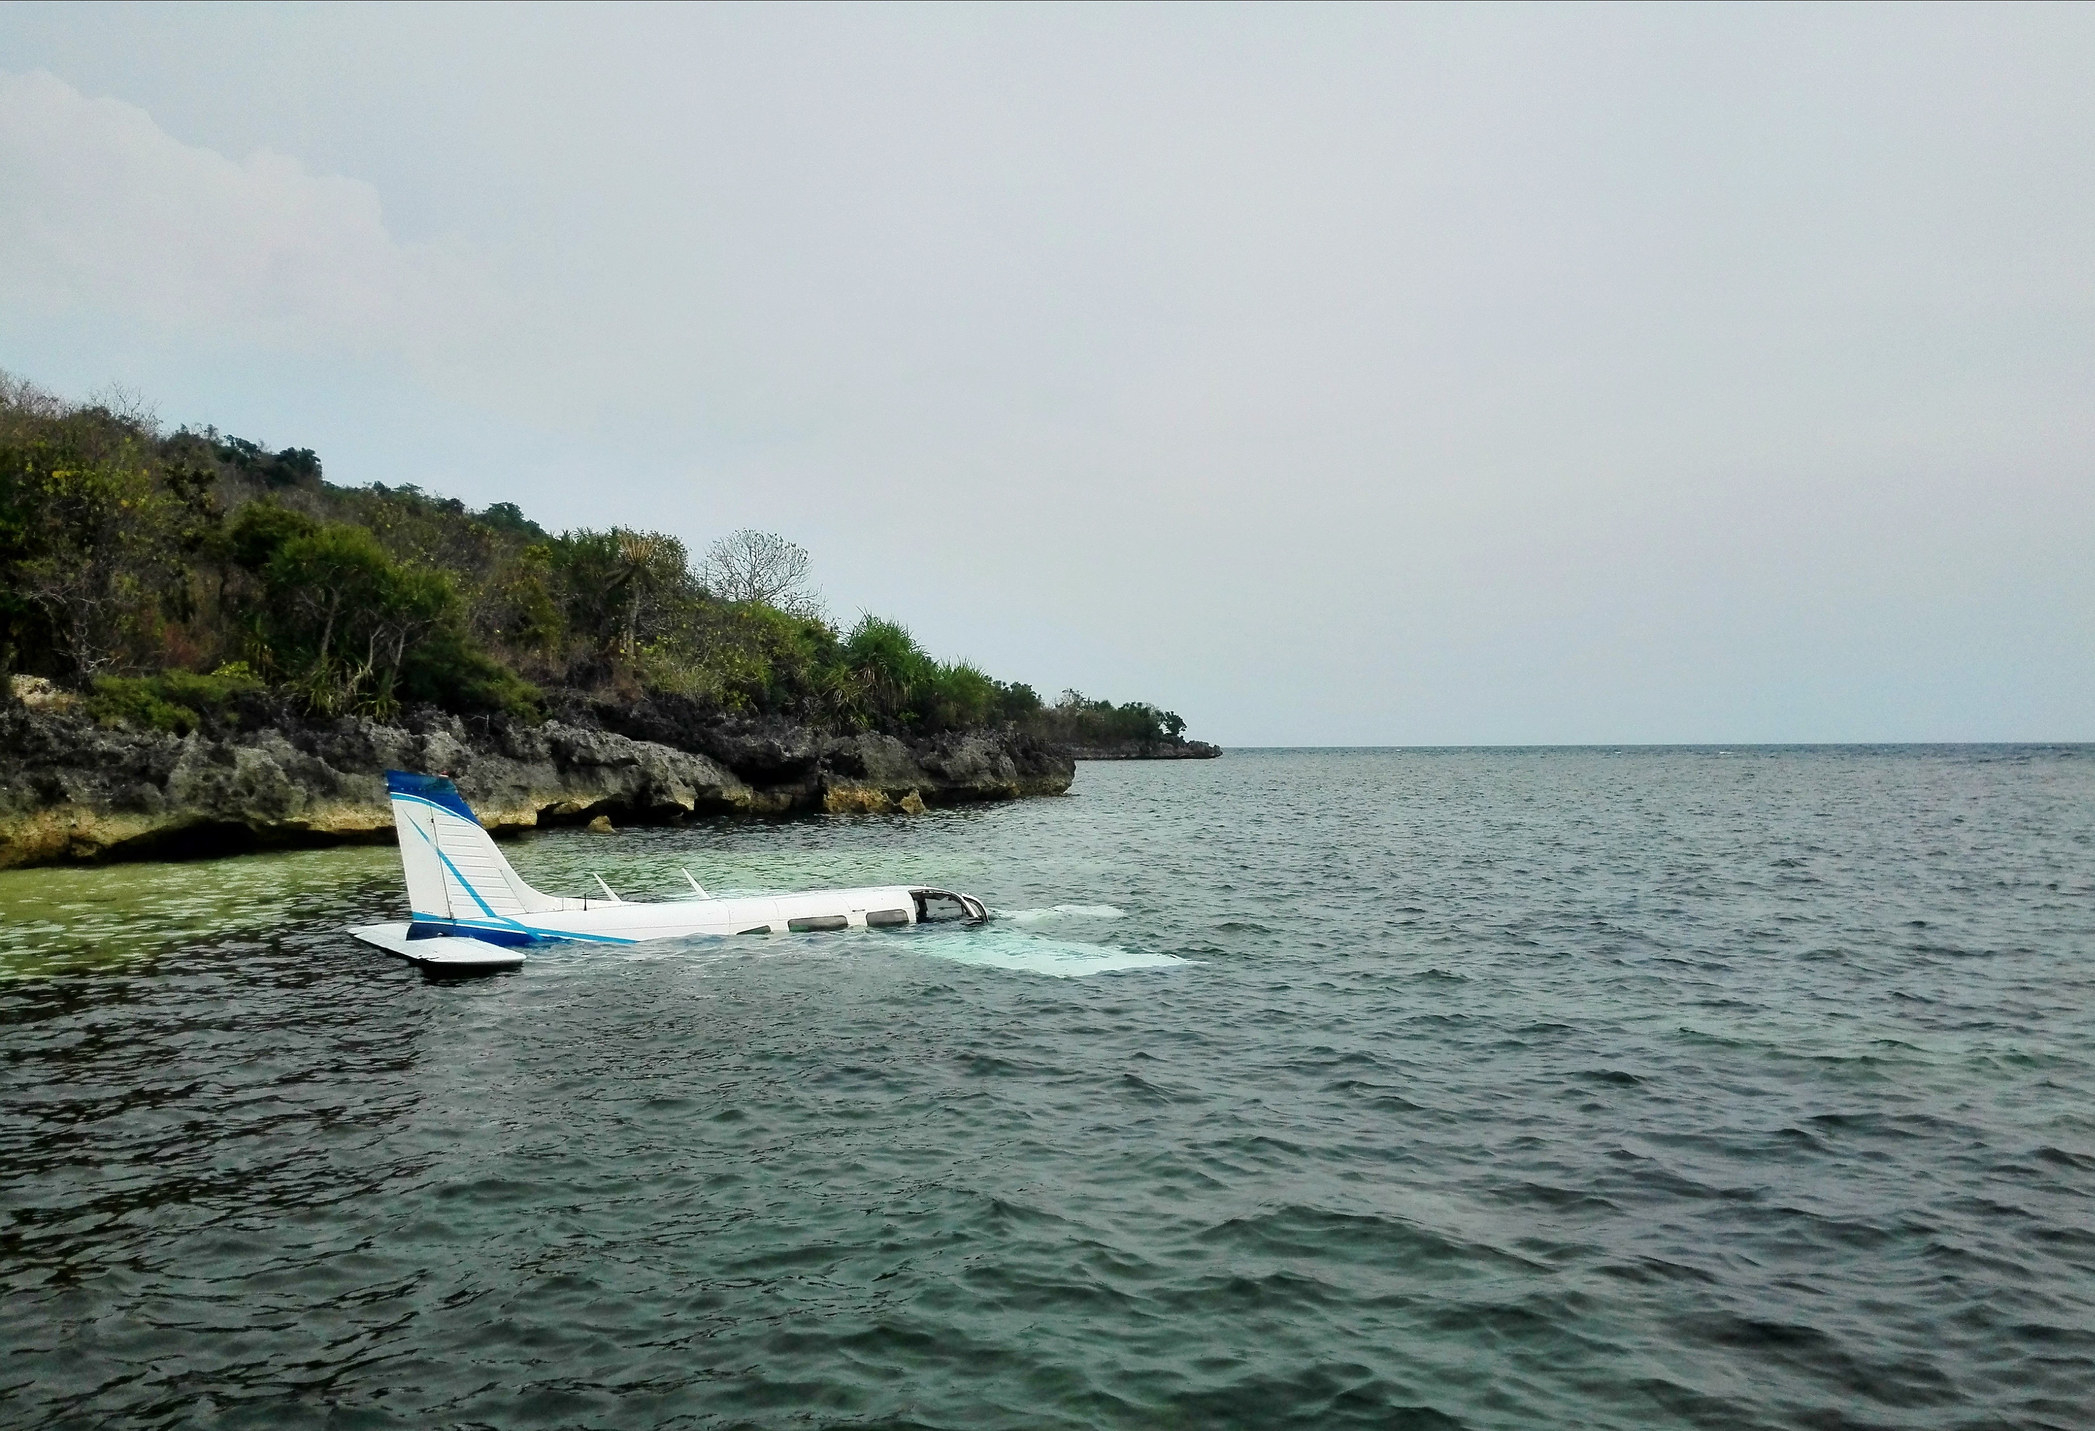 A plane crashed into the ocean